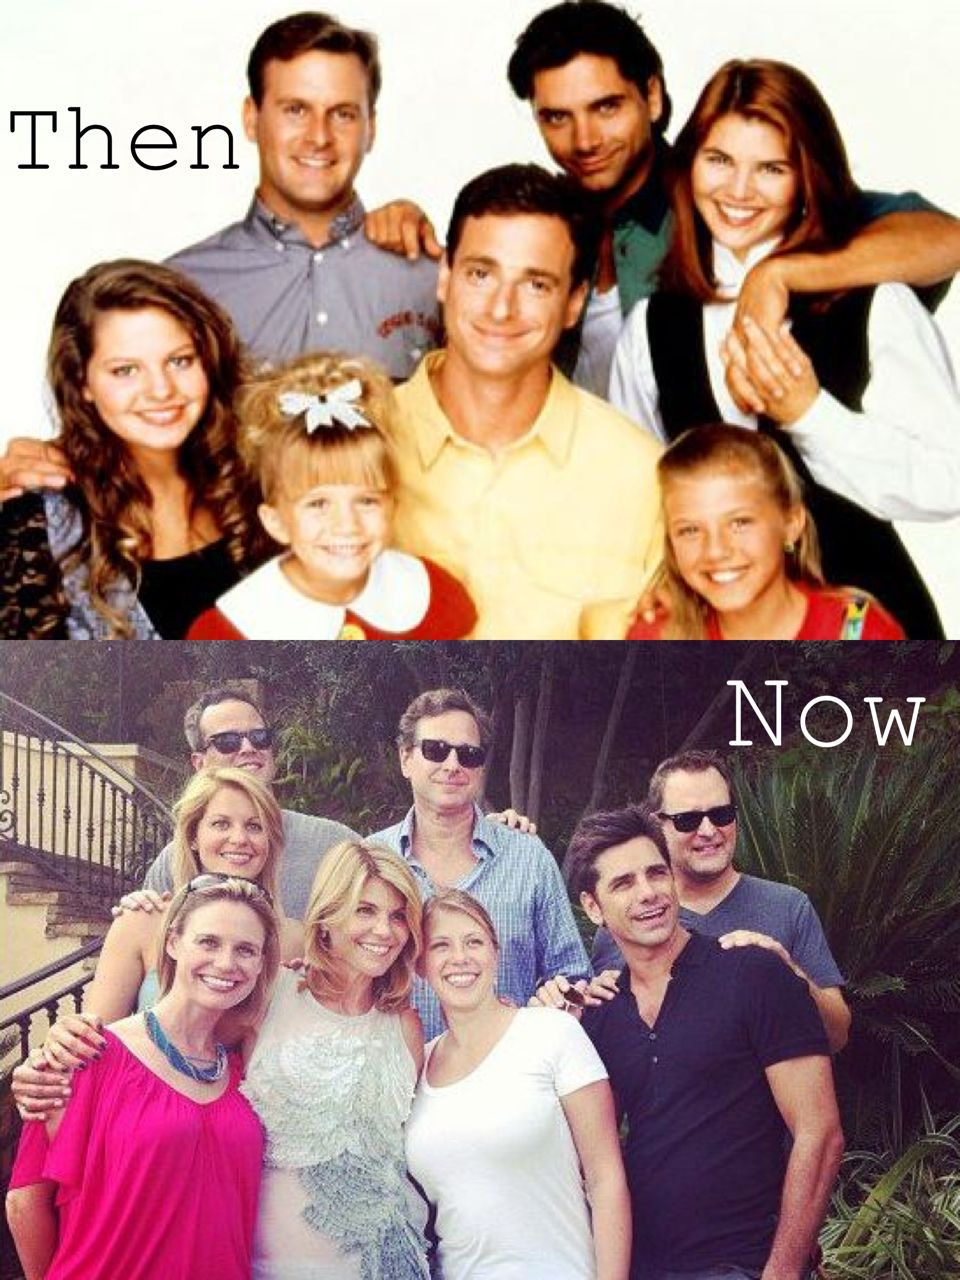 Full House Reunion Mary Kate And Ashley Full House Reunion For Full House Reunion Full House Full House Cast Full House Funny